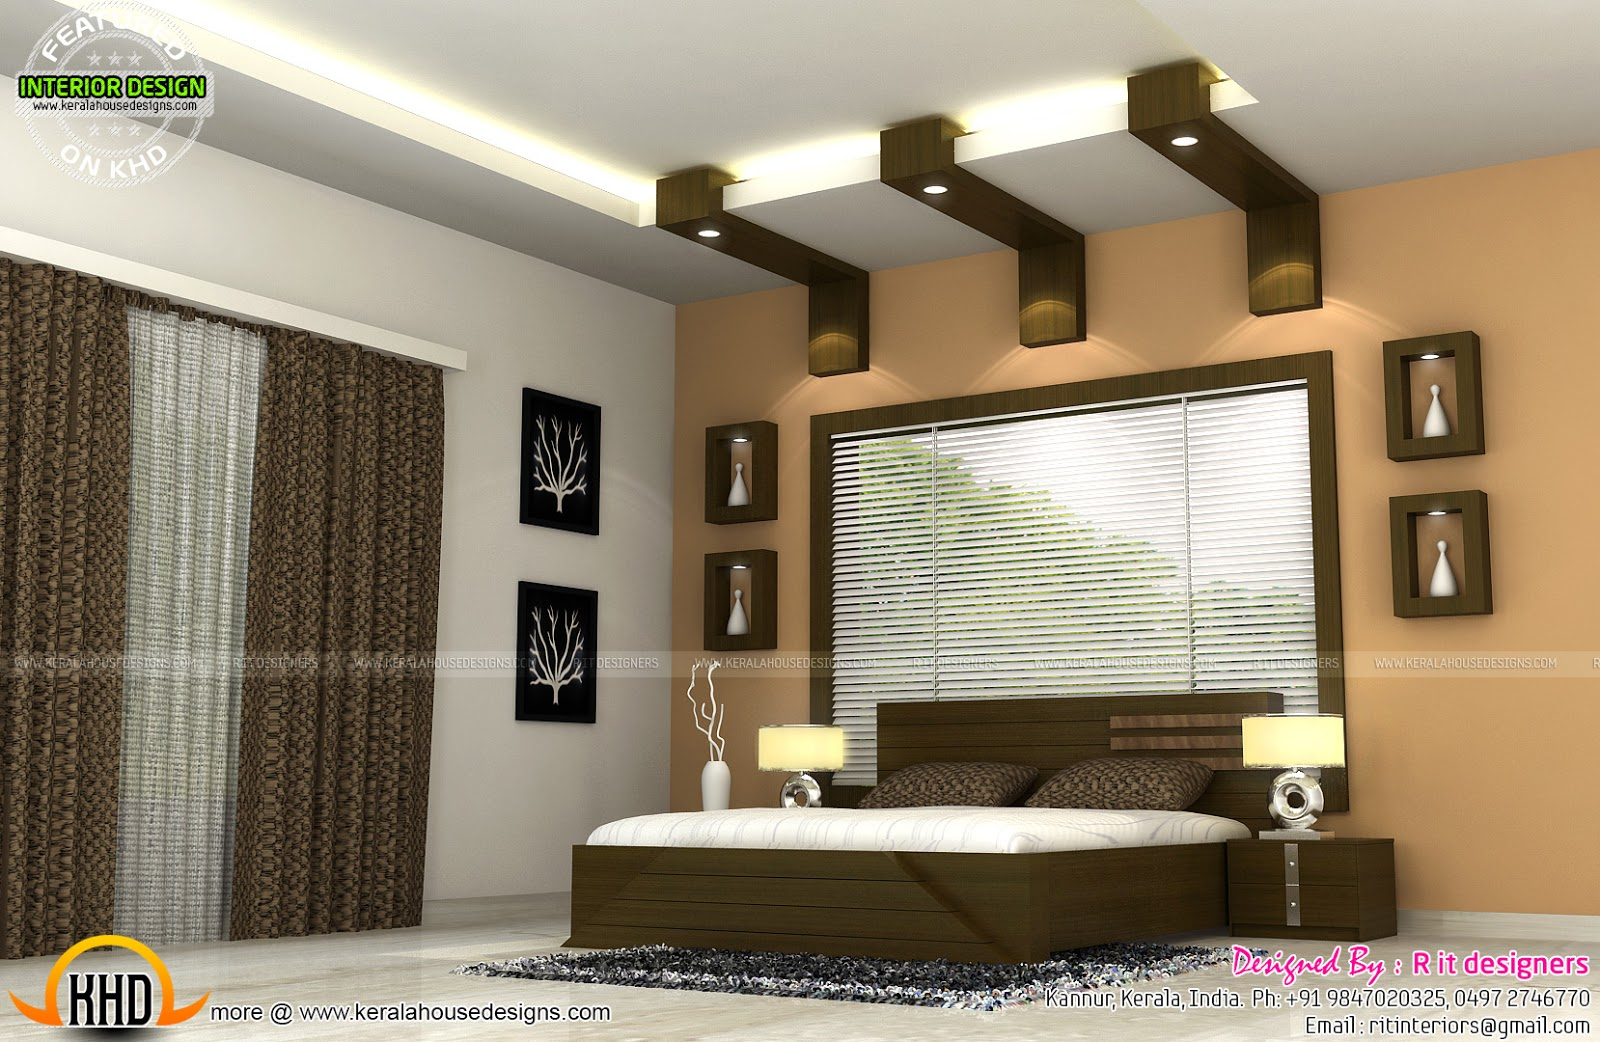 Interiors of bedrooms and kitchen kerala home design and for Bedroom interior design pictures